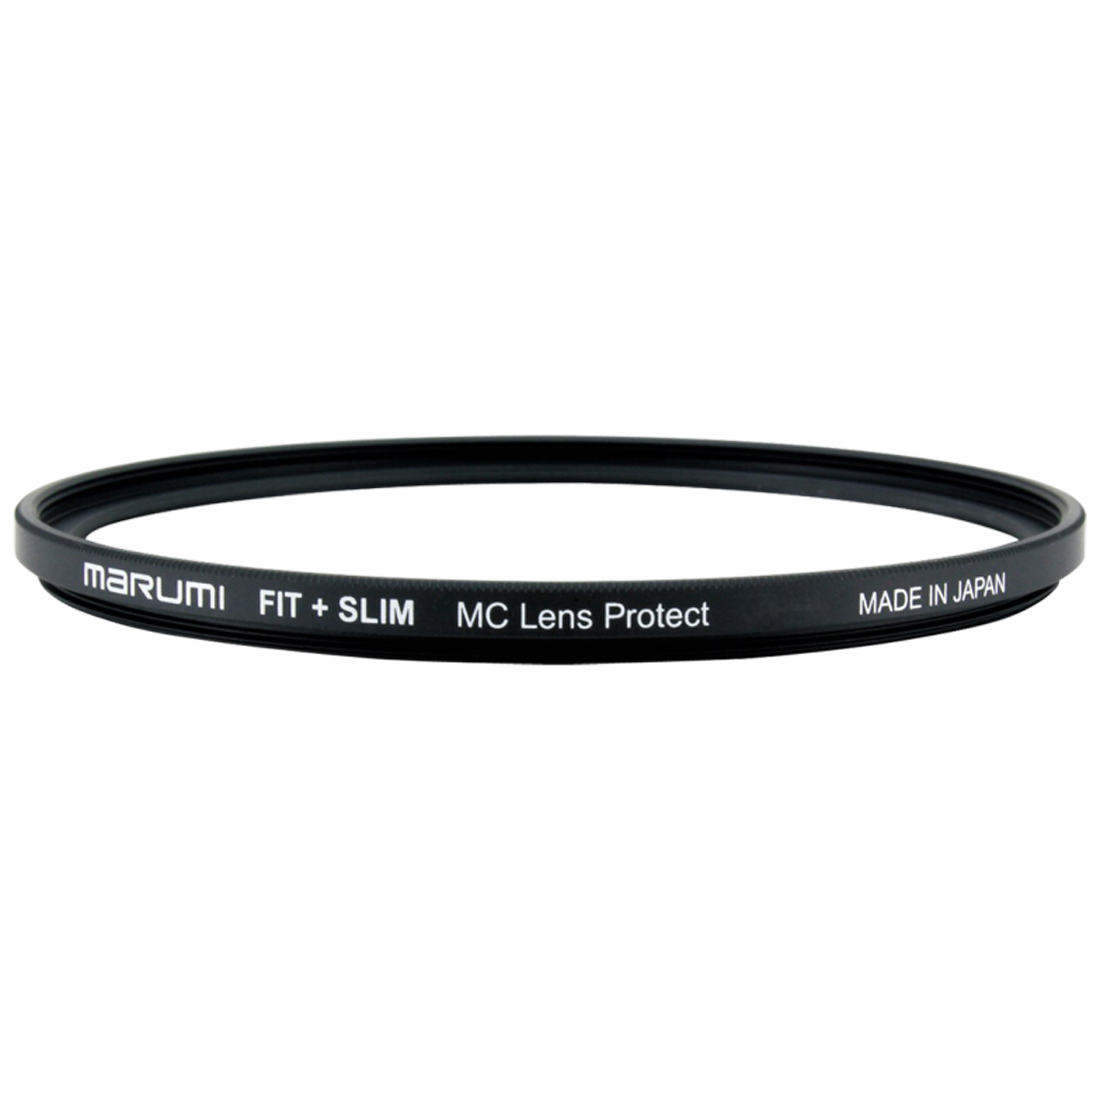 Zaštitni filter Fit+Slim Lens Protect Marumi - 82 mm